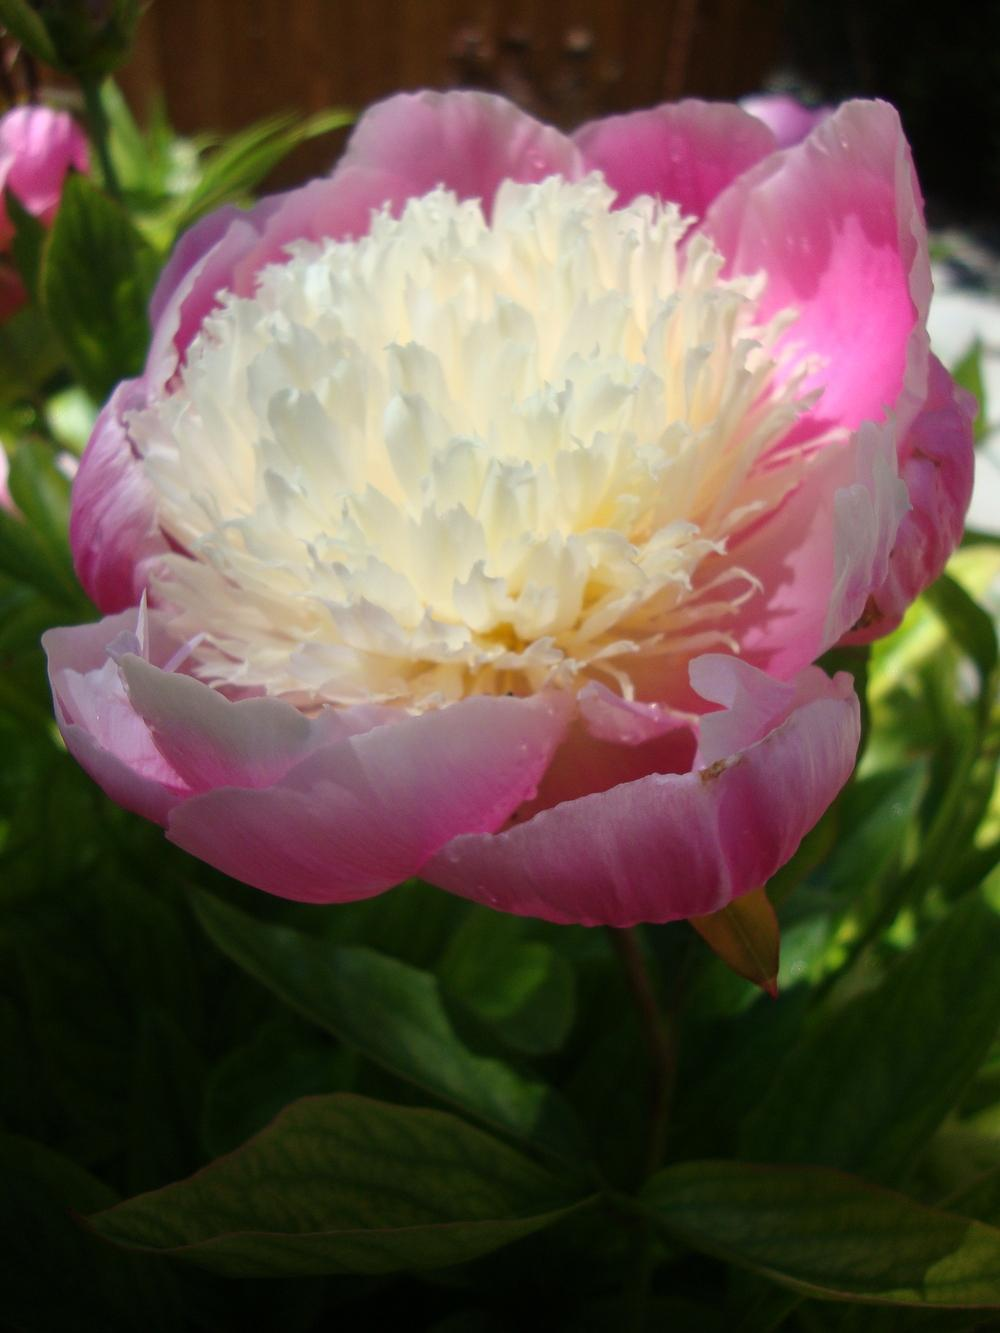 Photo of Peonies (Paeonia) uploaded by Paul2032